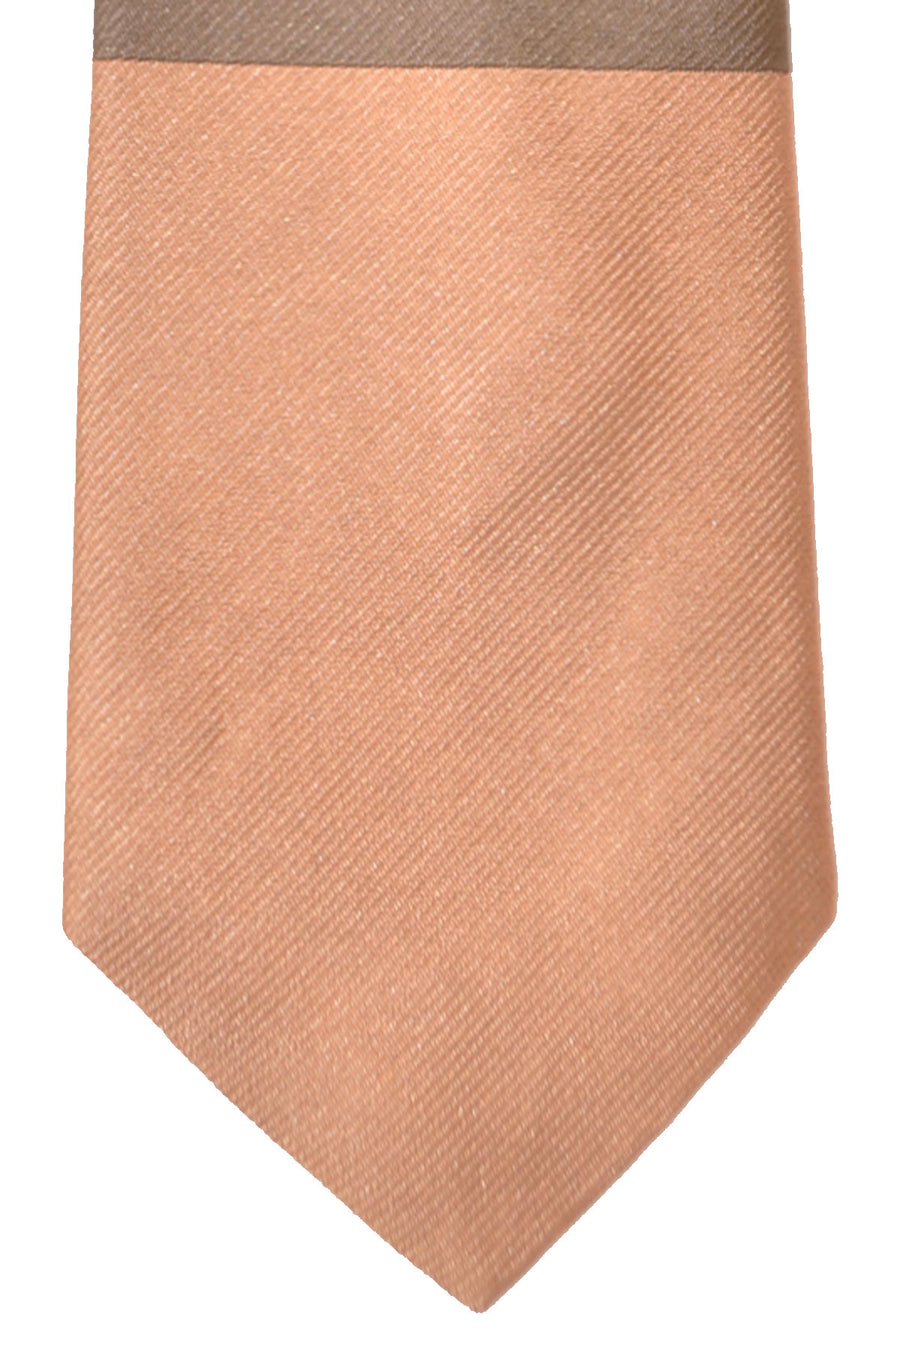 Gene Meyer Tie Gray Salmon Olive Design